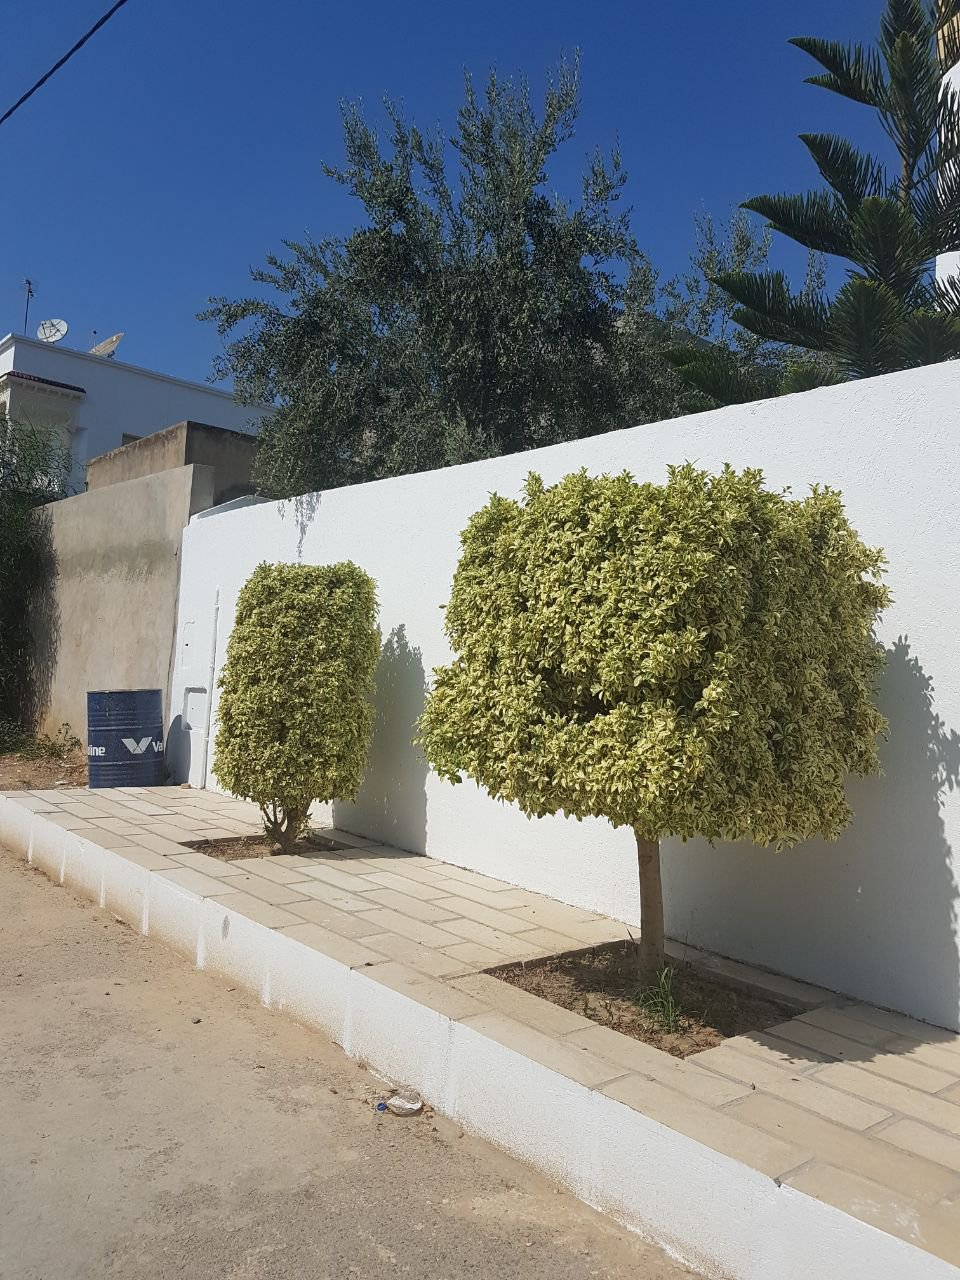 New villa of 600 m2 covered Andalusian type architecture